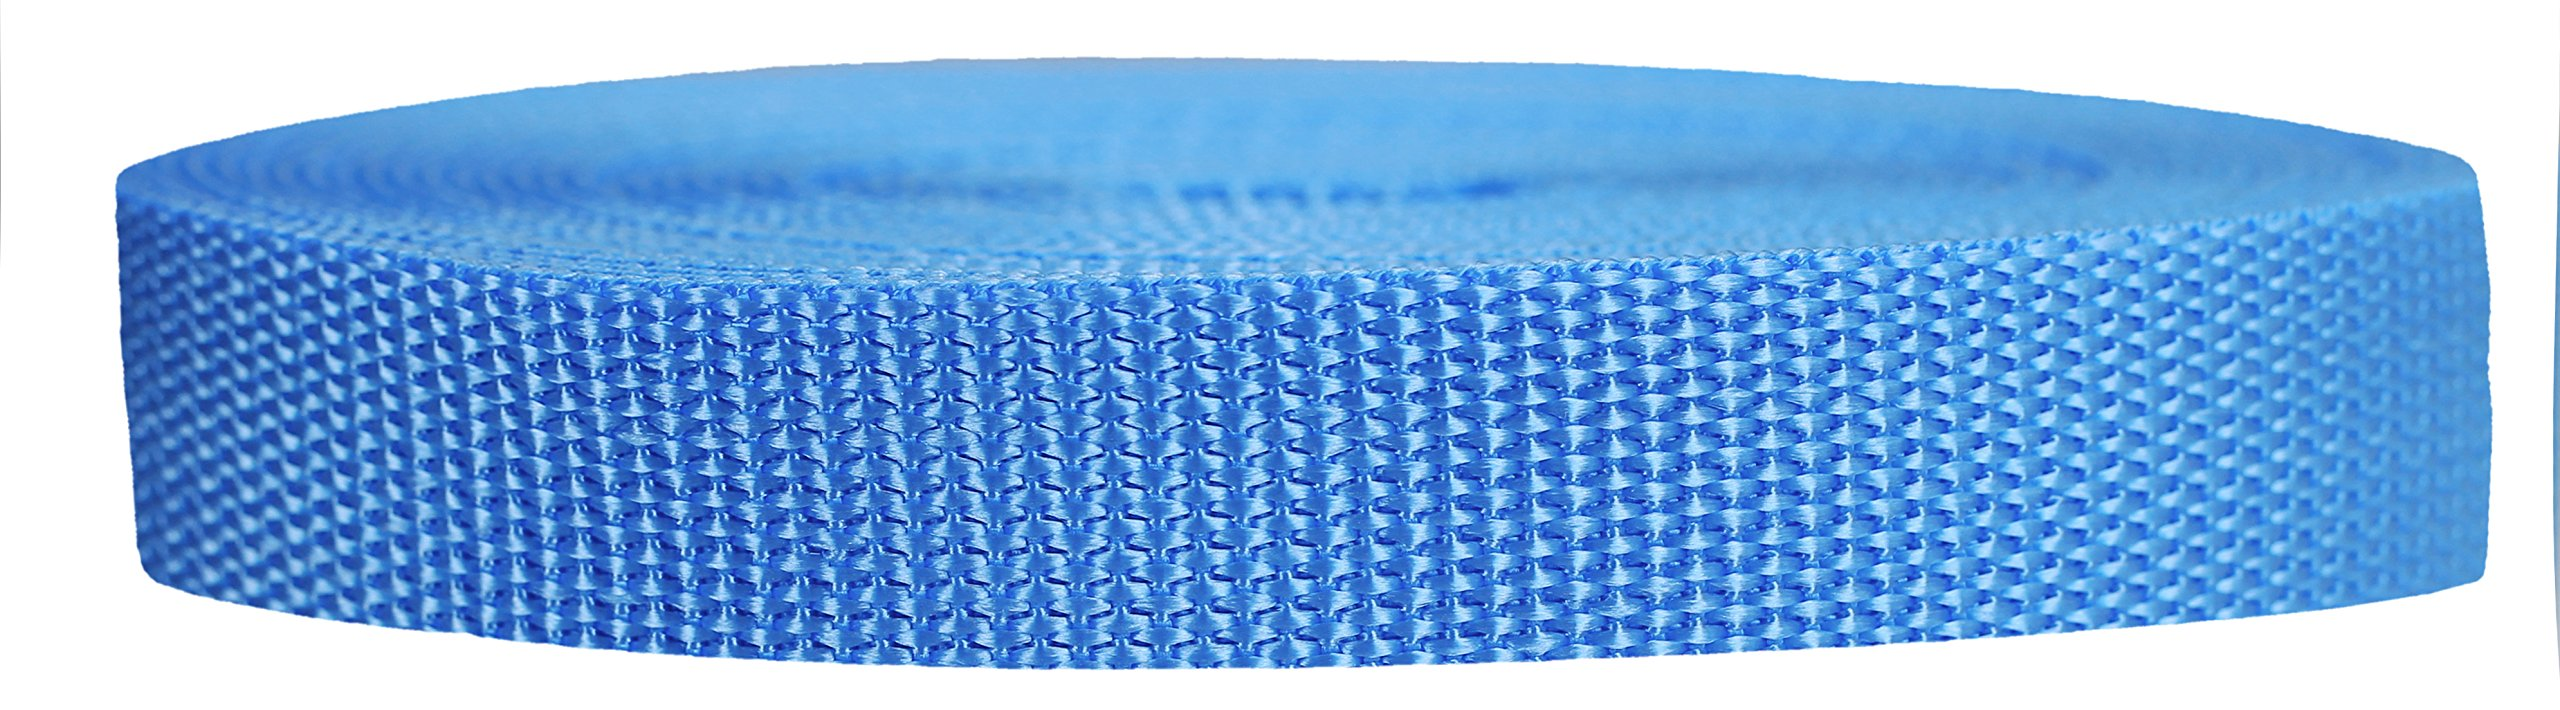 Strapworks Heavyweight Polypropylene Webbing - Heavy Duty Poly Strapping for Outdoor DIY Gear Repair, 3/4 Inch x 10 Yards, Powder Blue by Strapworks